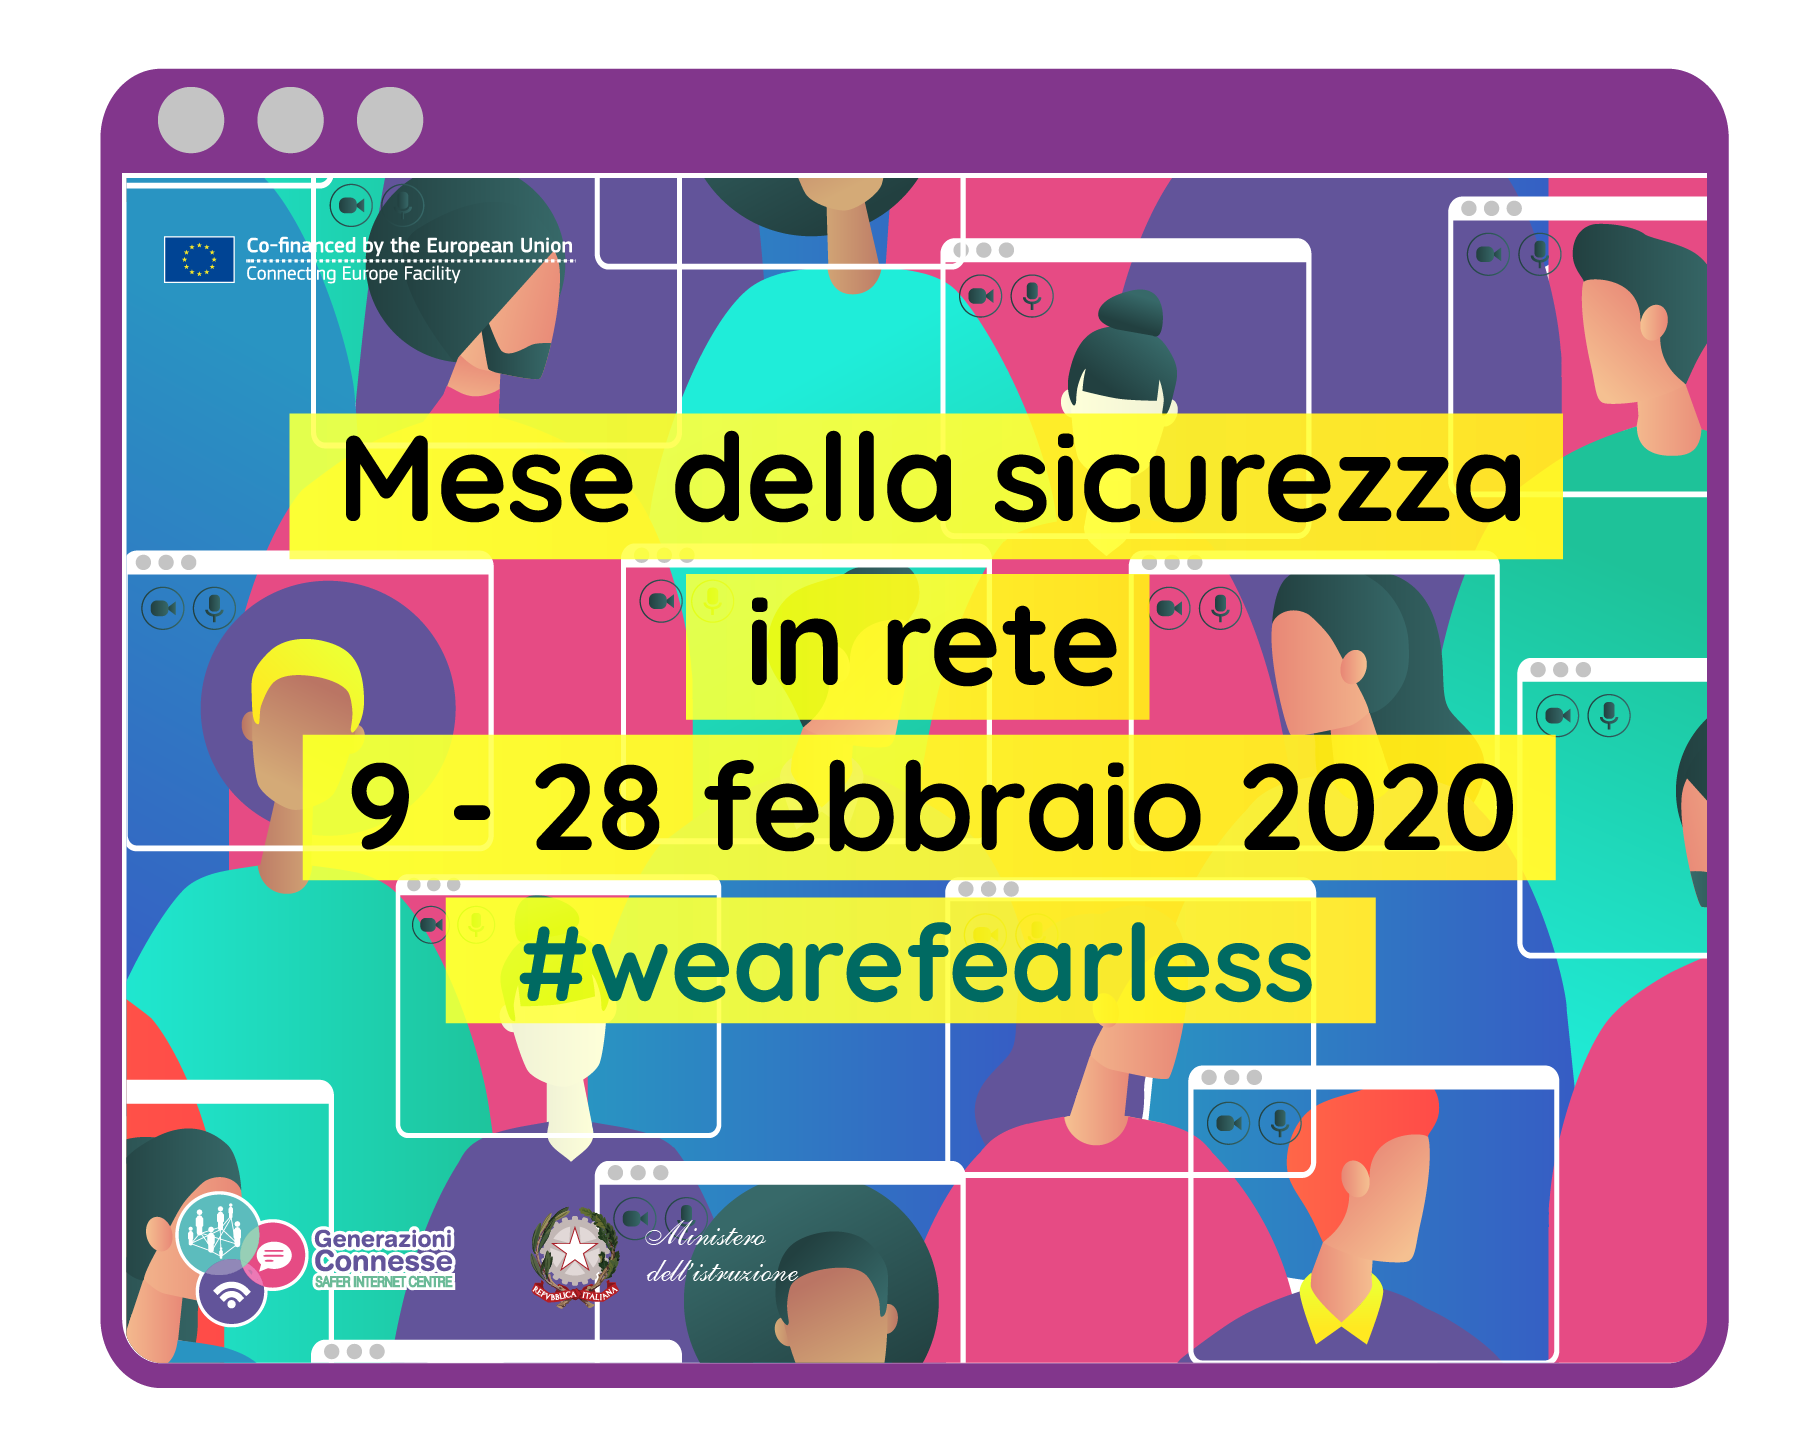 Giornata mondiale per la sicurezza in Rete (Safer Internet Day)